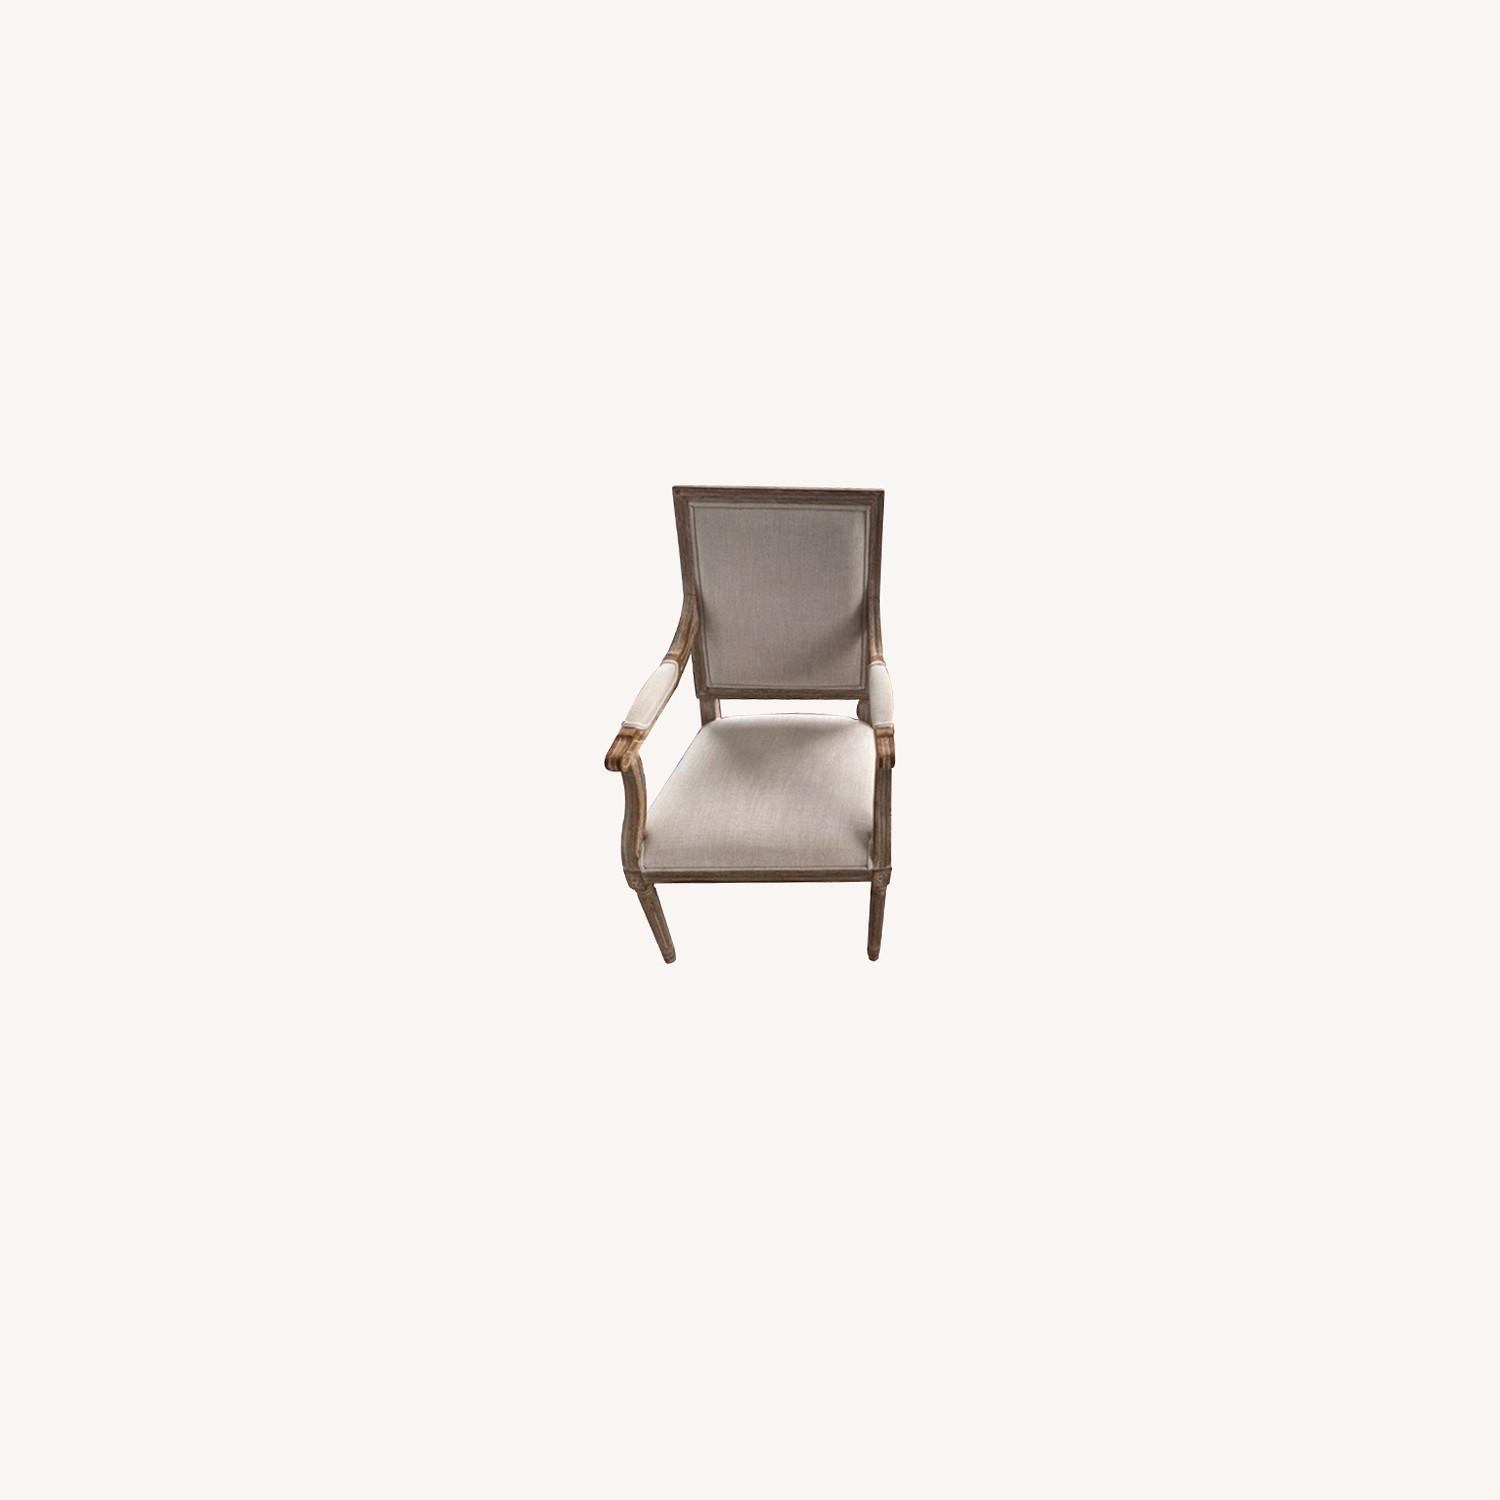 Restoration Hardware French Square Upholstered Armchair - image-0